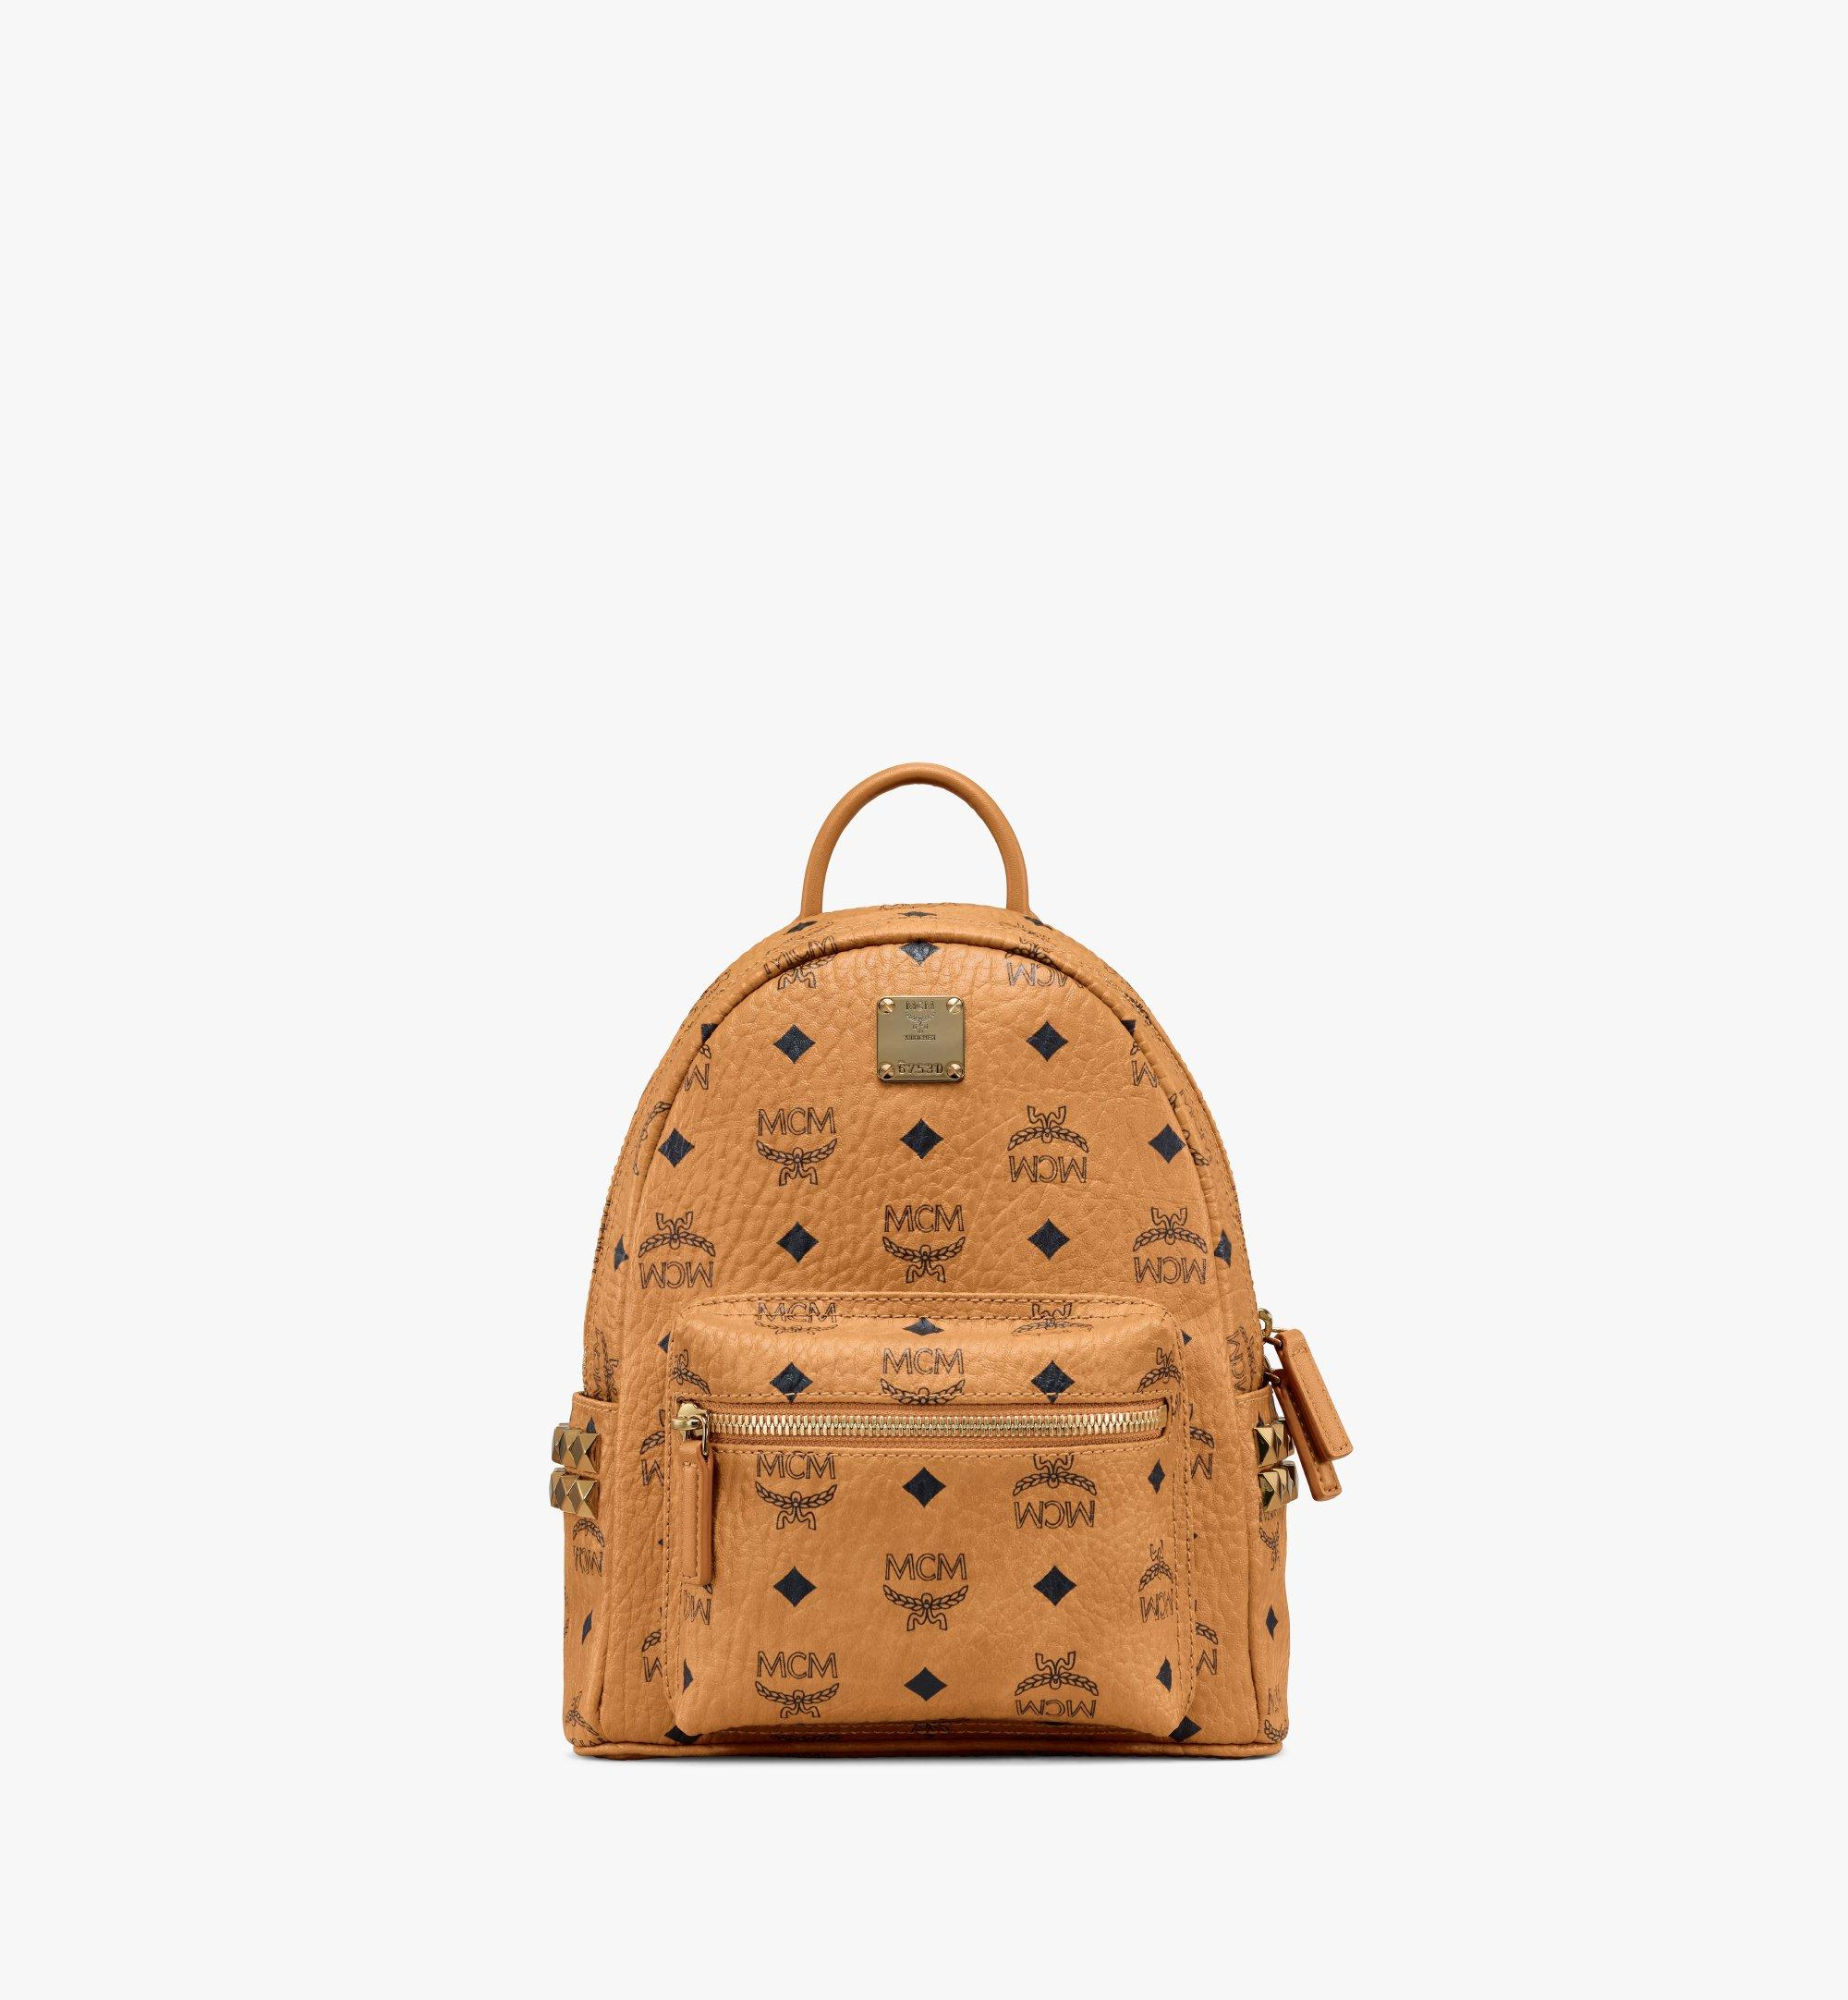 27 cm 10.5 in Stark Side Studs Rucksack in Visetos Cognac